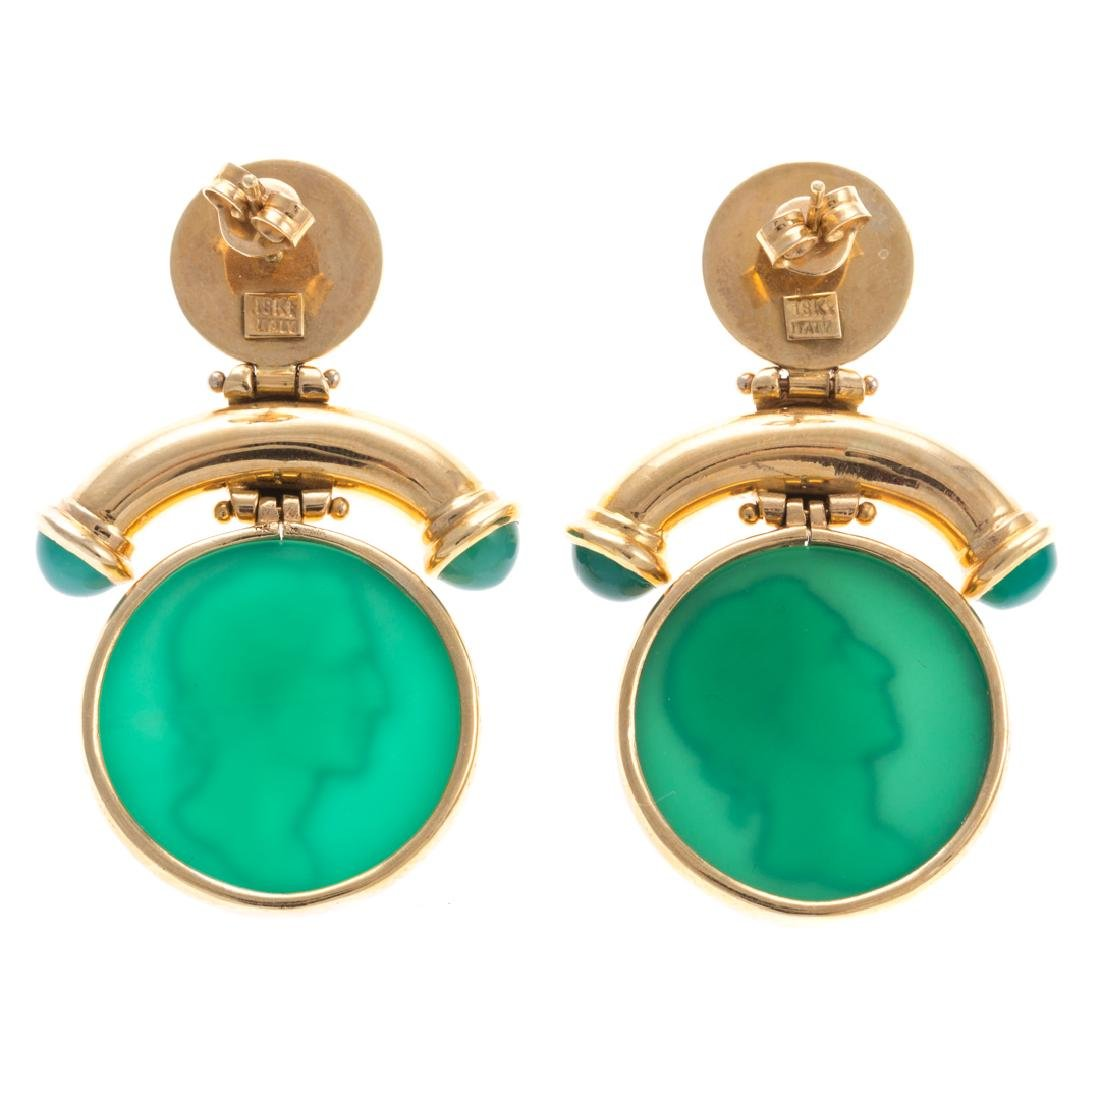 A Pair of 18K Green Intaglio Earrings - 3